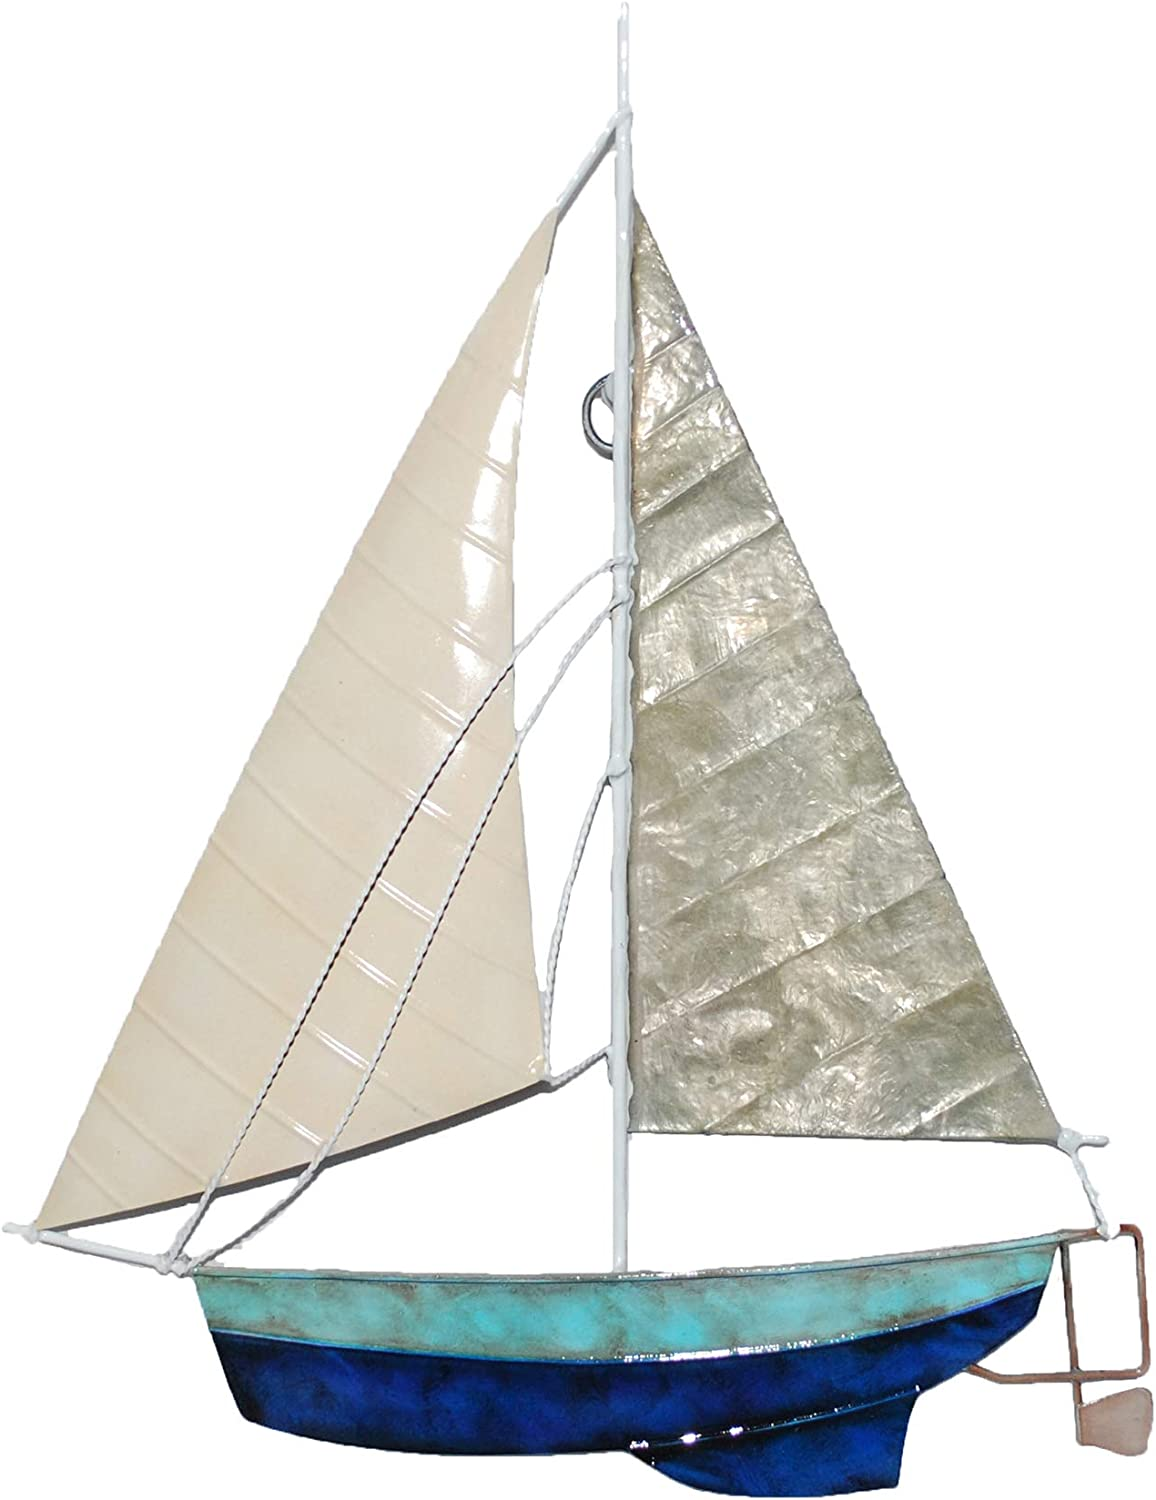 Eangee Home Design Sailboat Wall Decor Tan And Gray 8 Inches Length x 1 Inch Width x 11 Inches Height (m8038)